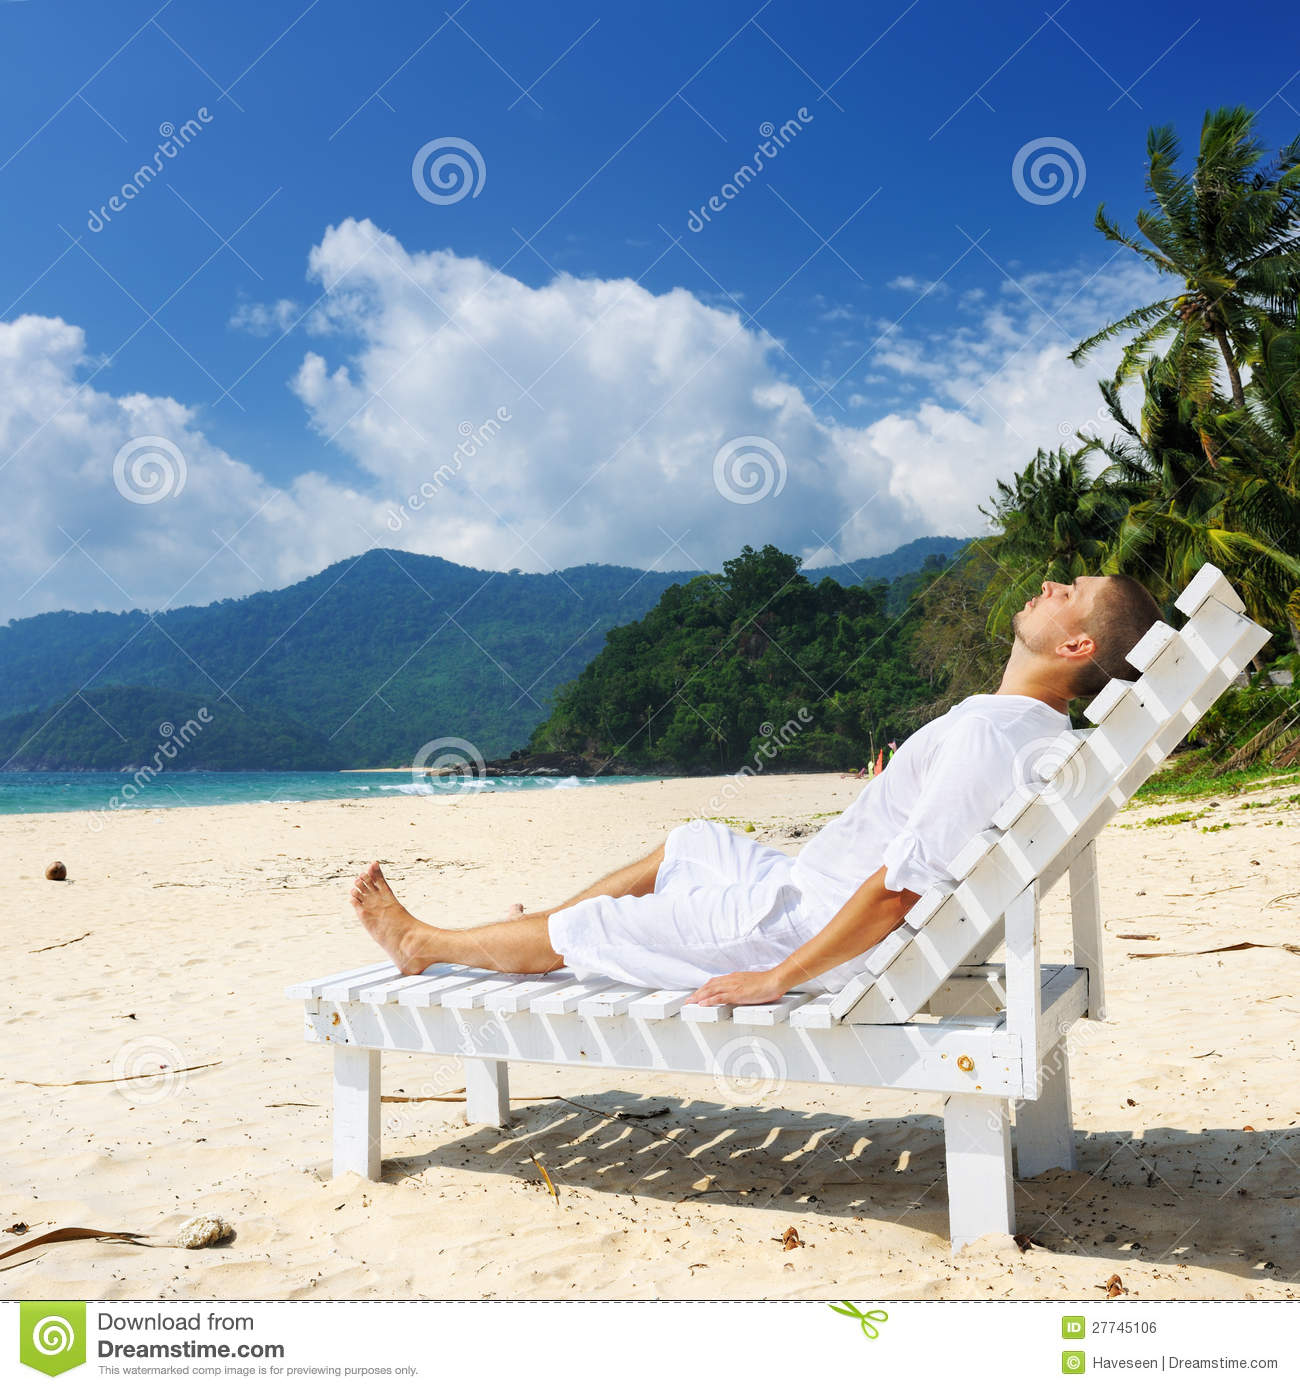 Man Relaxing On A Beach Stock Photo. Image Of Chaiselounge